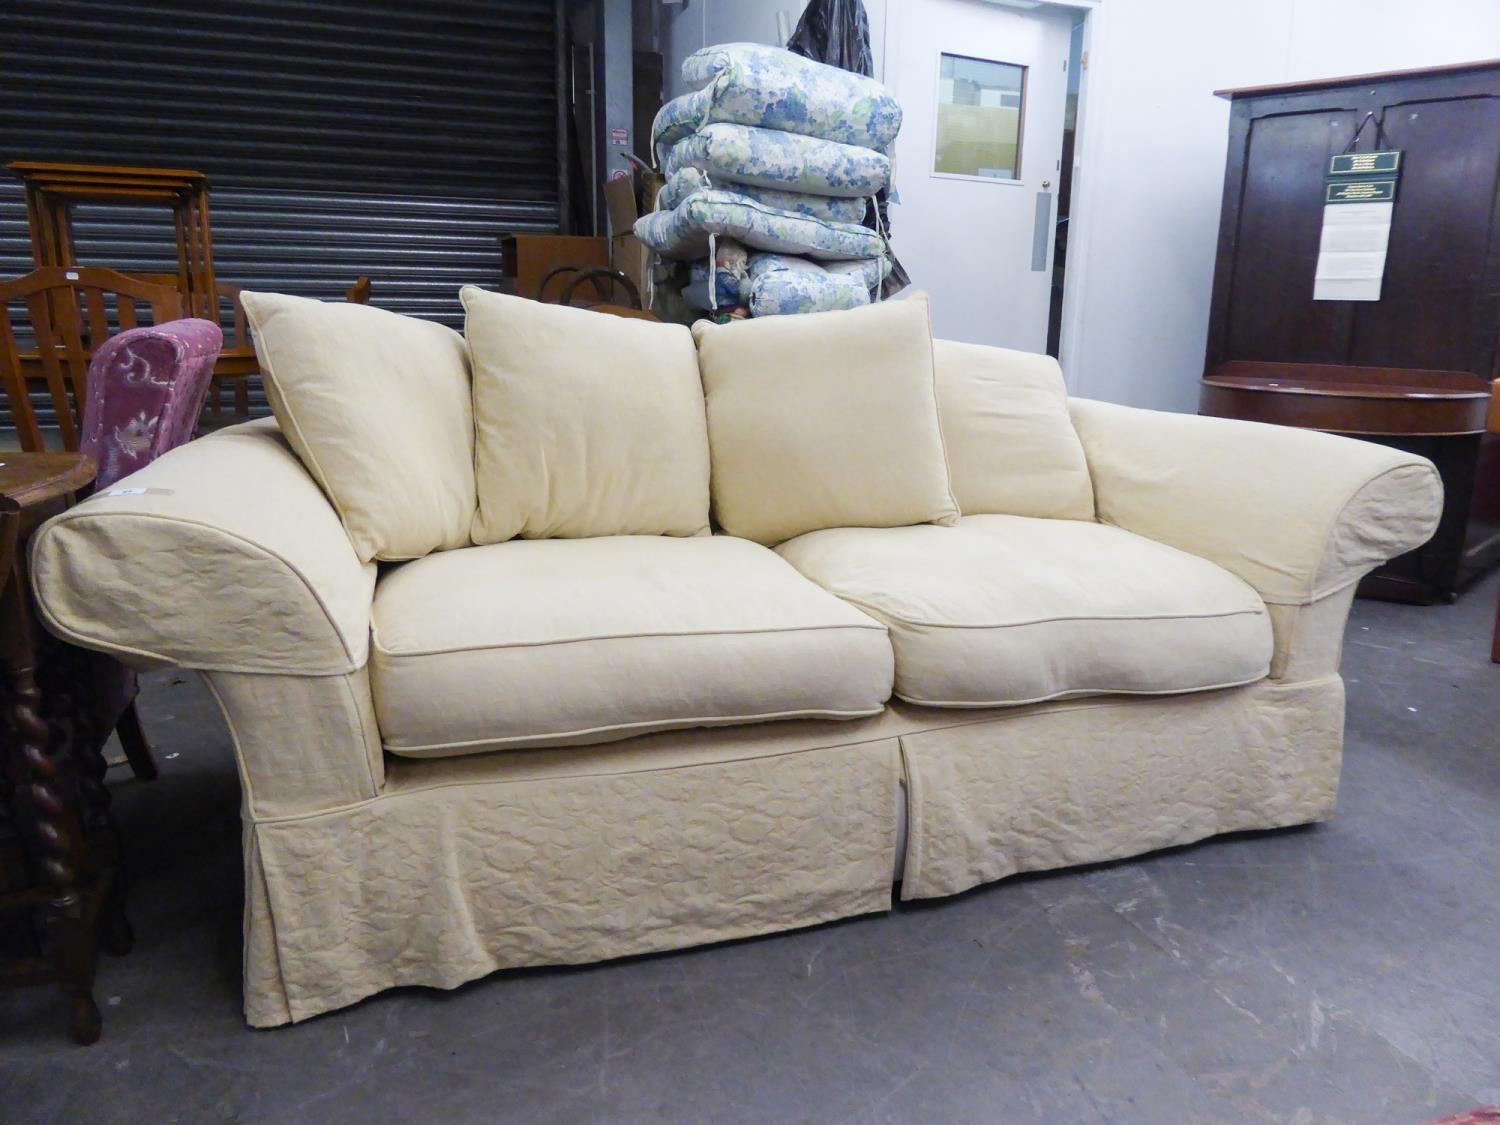 Lot 13 - GOOD QUALITY THREE SEATER SETTEE HAVING LOOSE CREAM PATTERNED COVERS AND FOUR THROW CUSHIONS